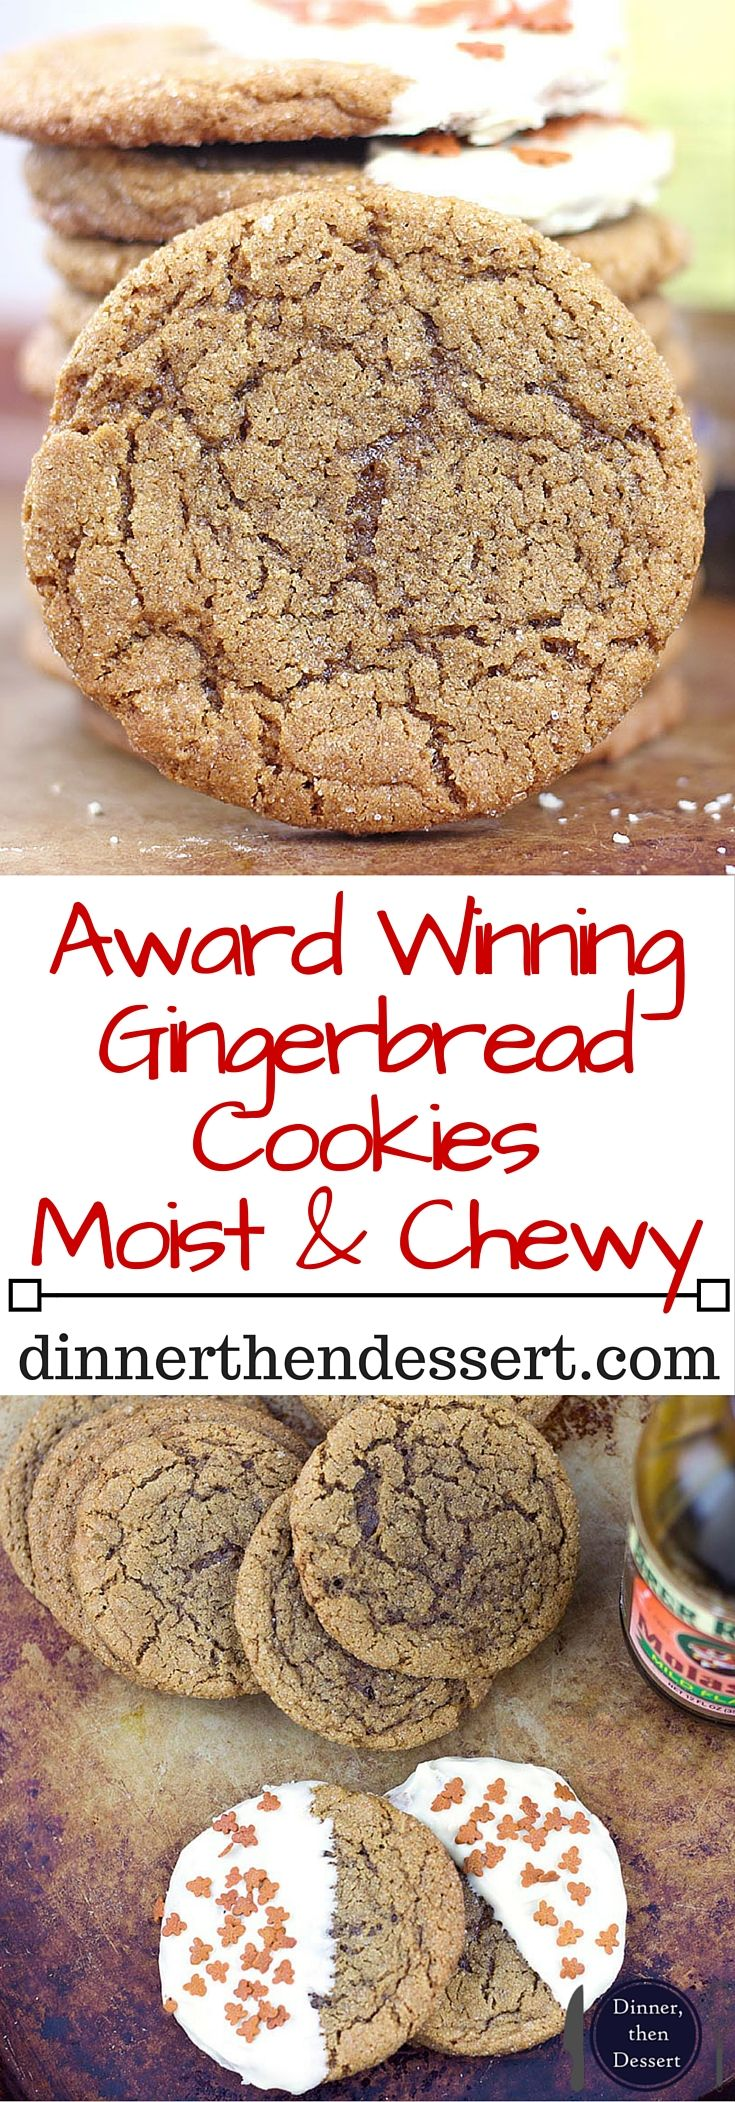 Award Winning Gingerbread Cookies